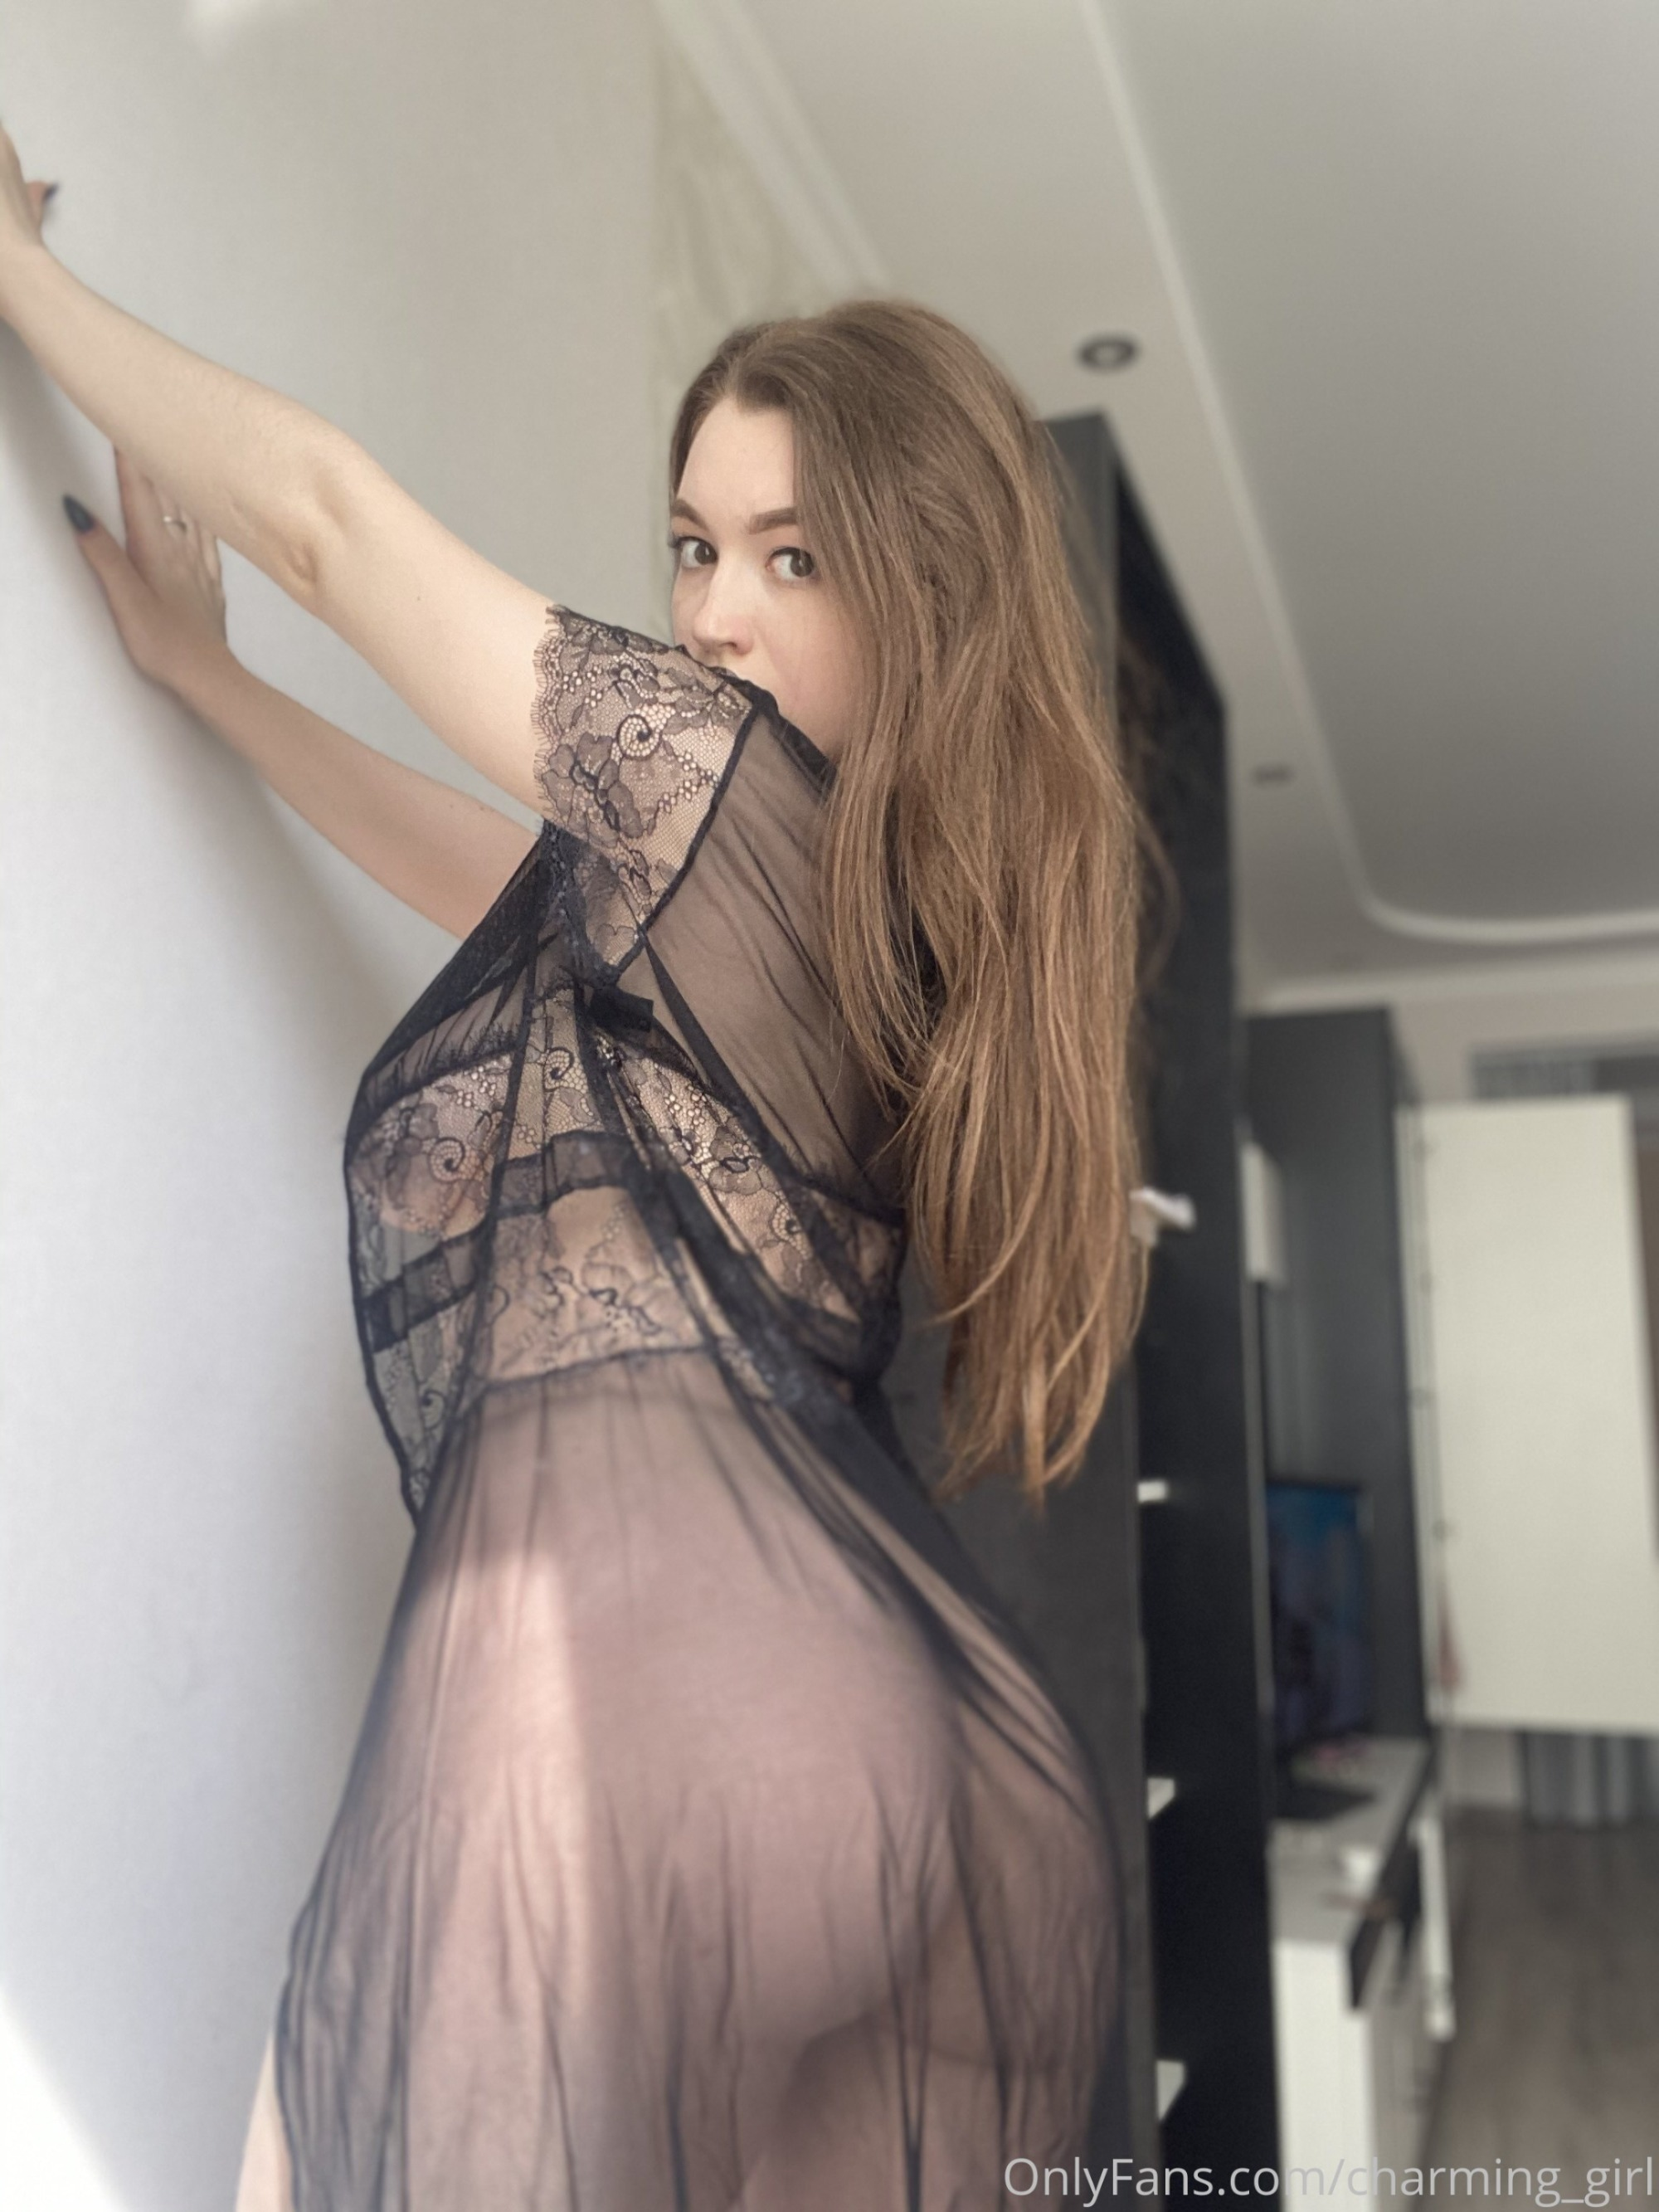 Milana, Charming Girl, Onlyfans 0027